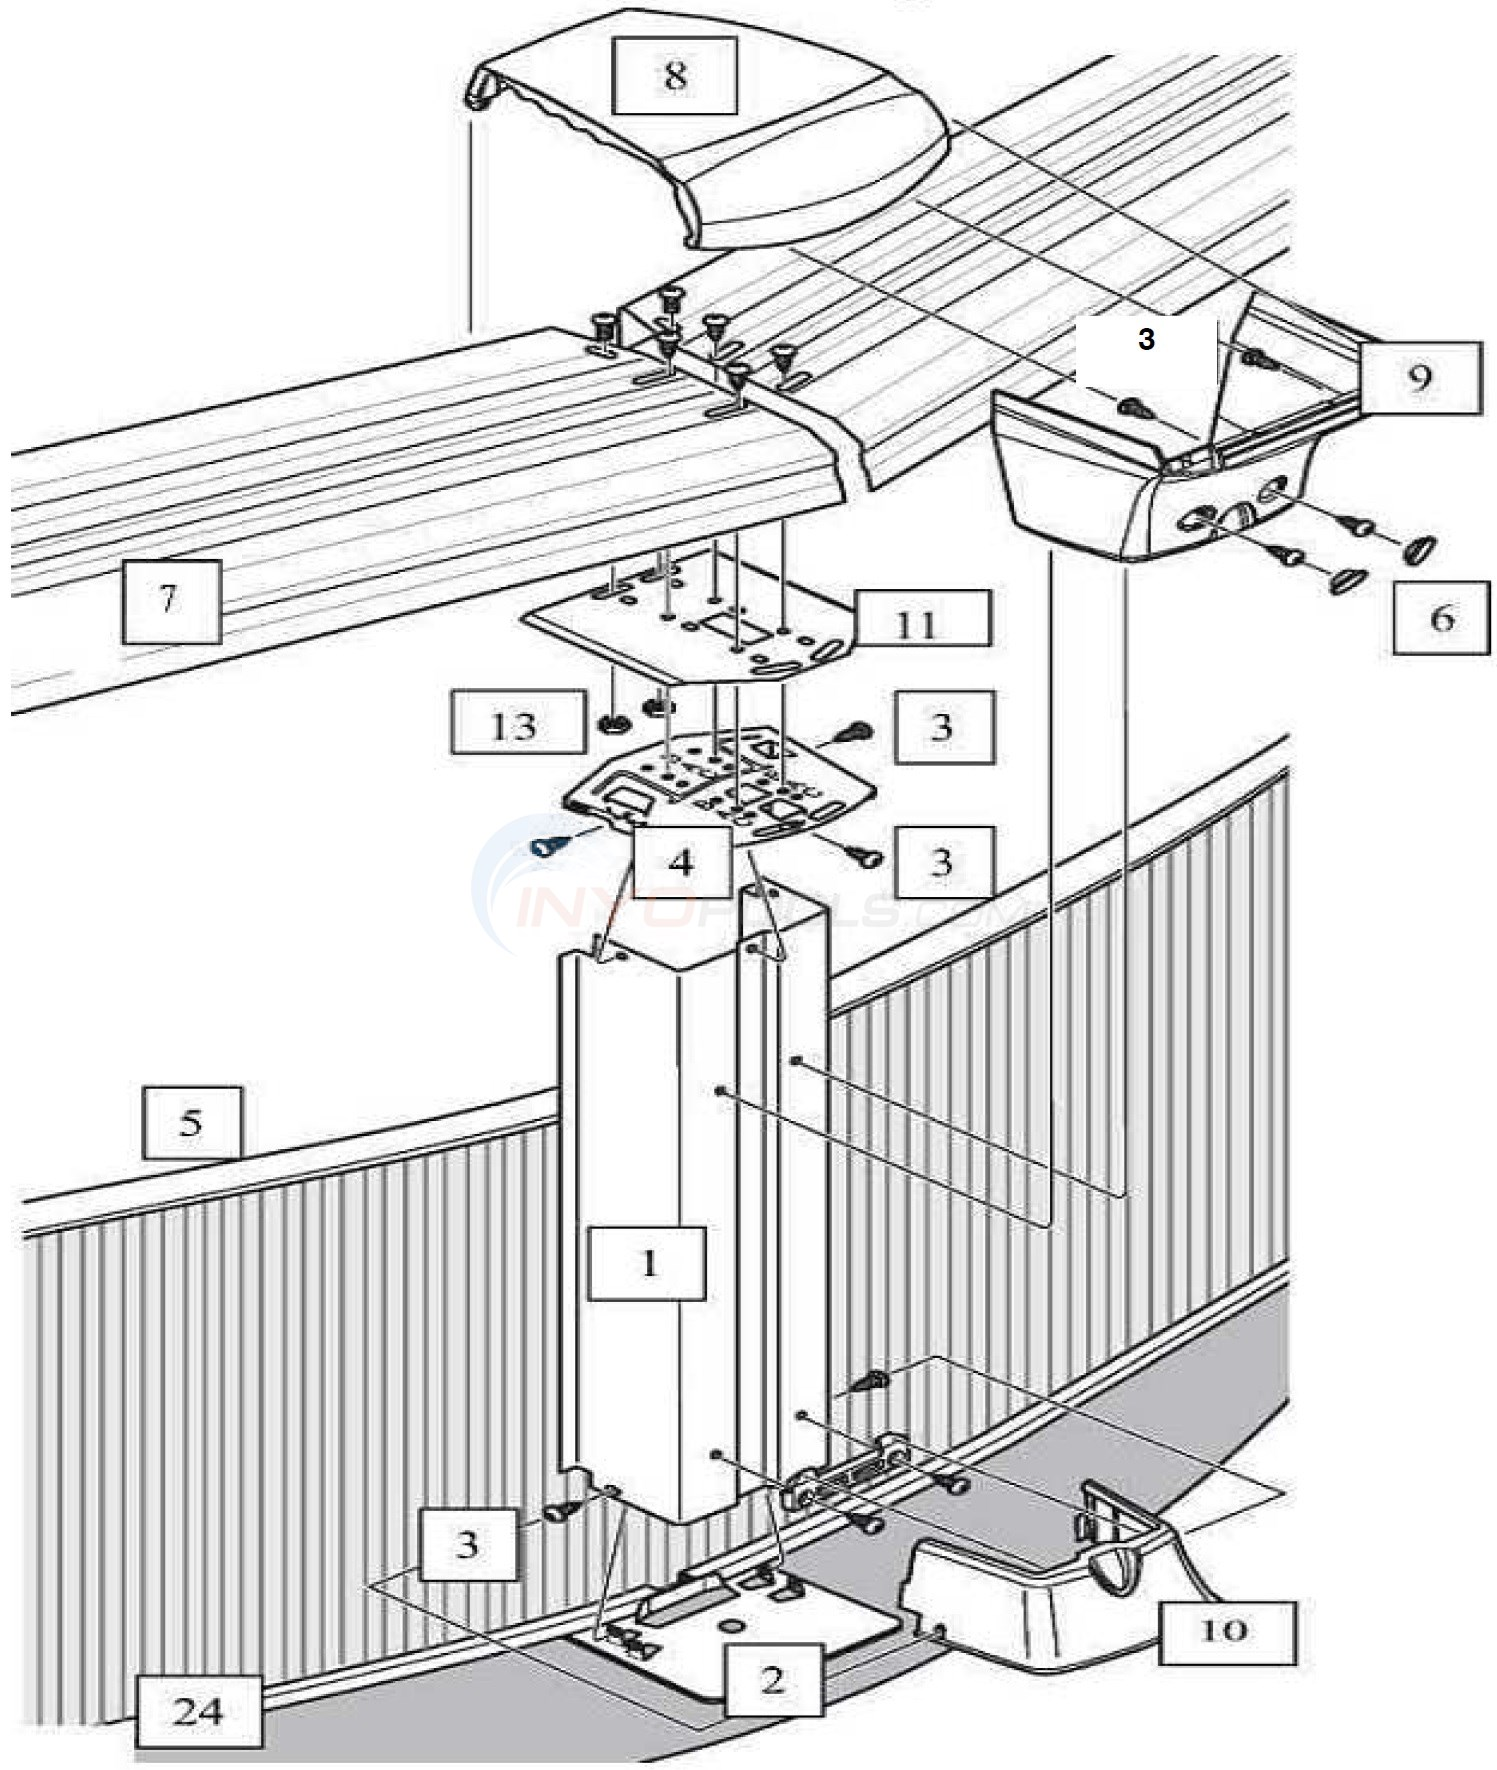 "Generation 21' Round 52"" Wall (Steel Top Rail, Steel Upright) Diagram"